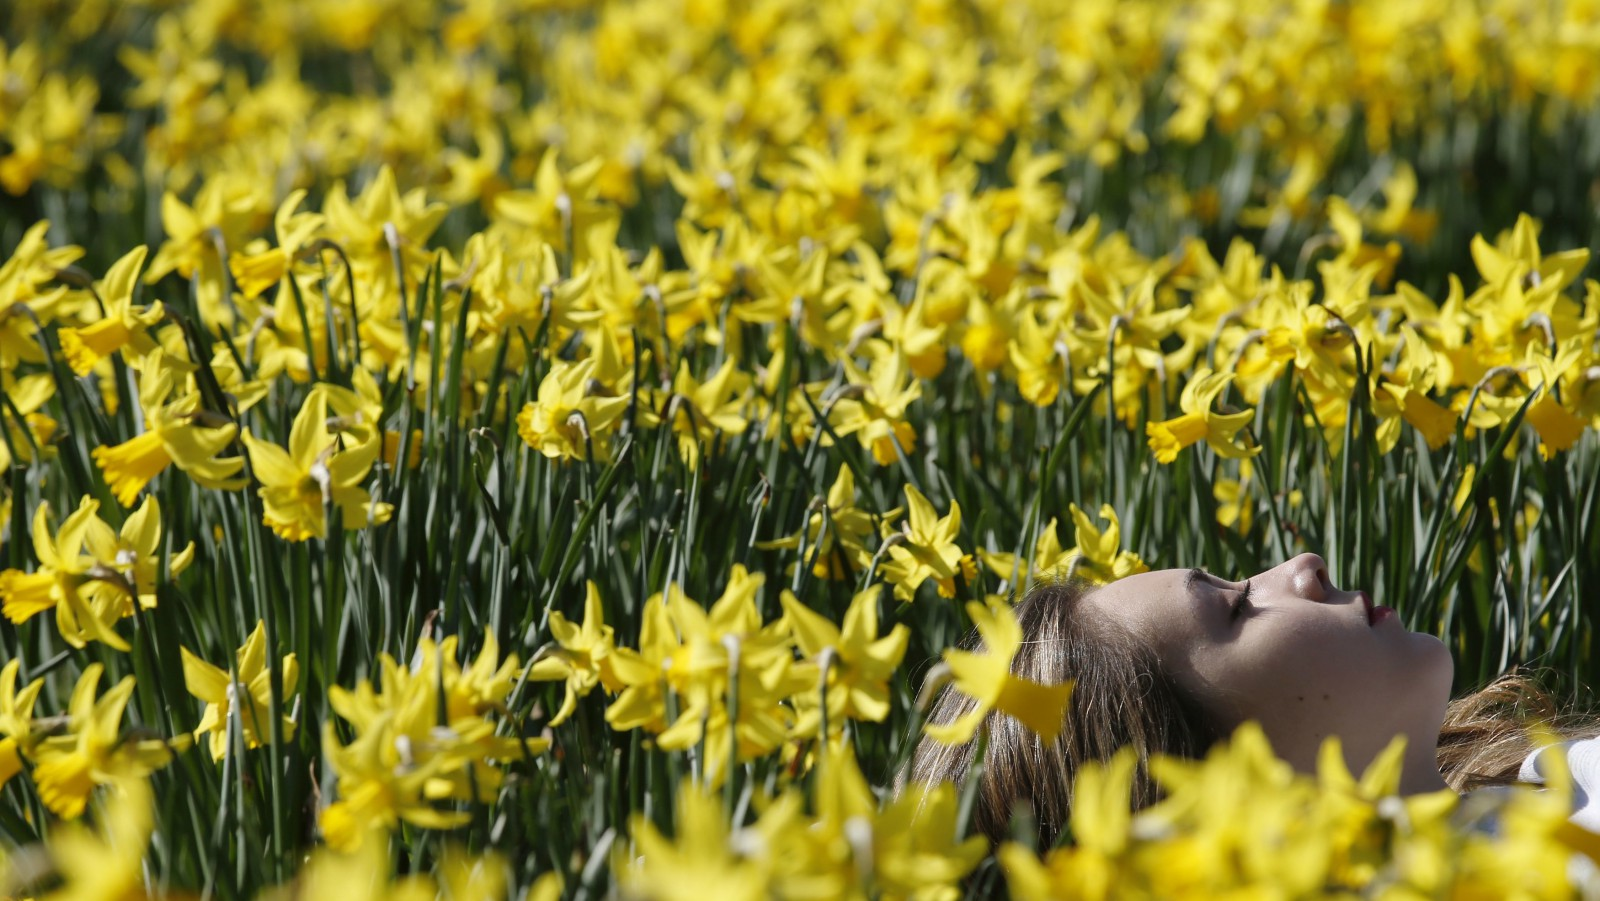 A woman rests among spring daffodils in the sun as the weather warms in London March 9, 2014.  REUTERS/Luke MacGregor  (BRITAIN - Tags: ENVIRONMENT SOCIETY) - RTR3GBJL